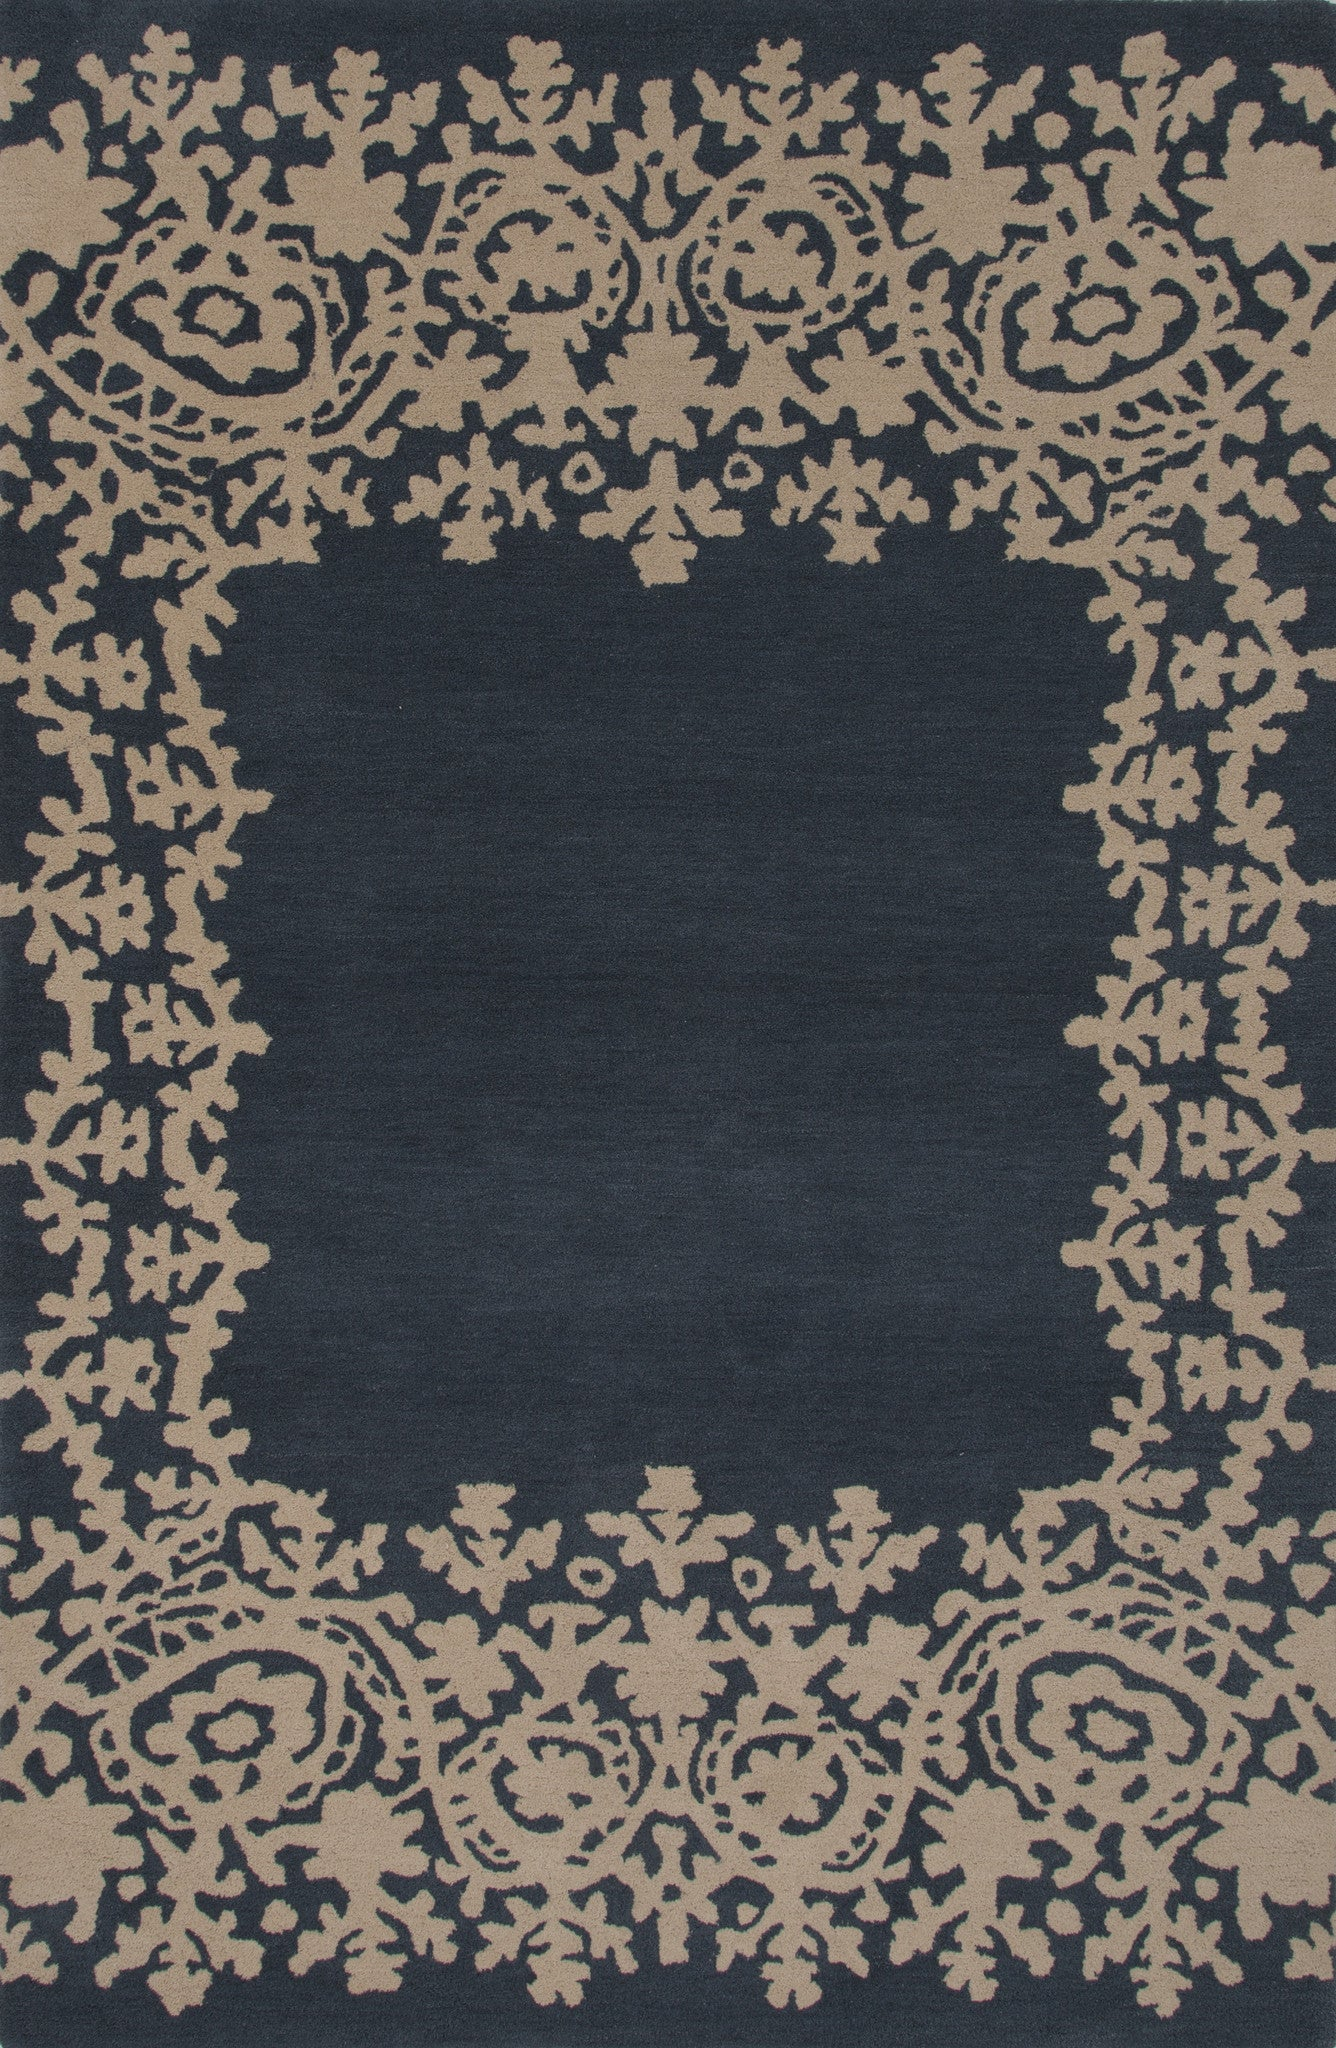 Jaipur rugs modern tribal pattern blue wool area rug mmt02 for Modern wool area rugs